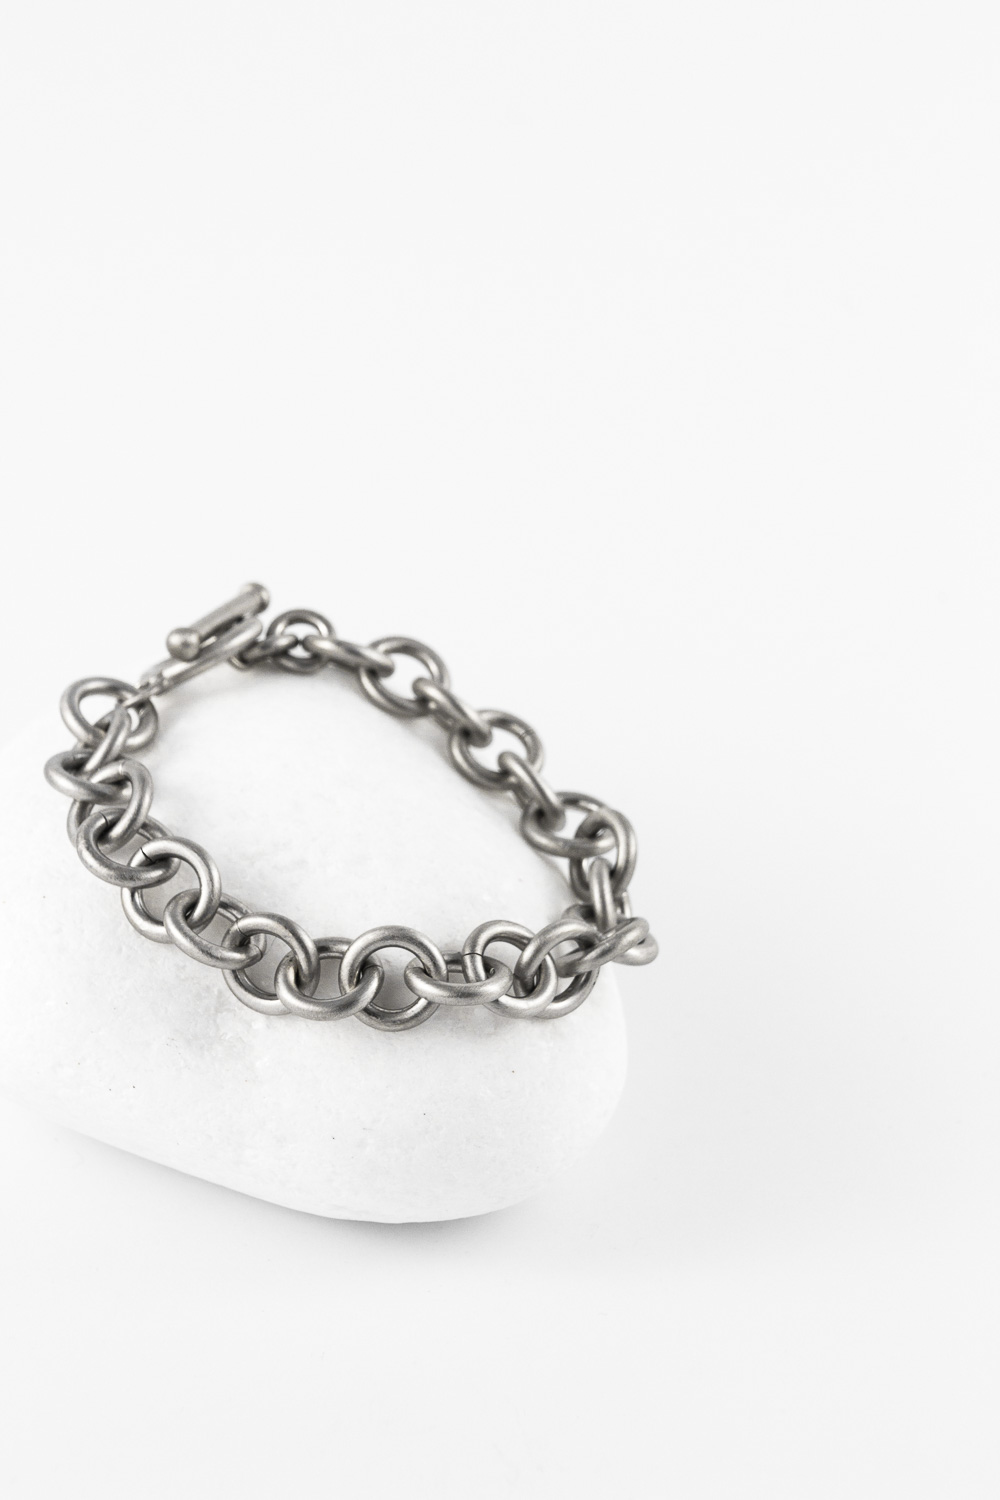 Bracelet All Links, Silver